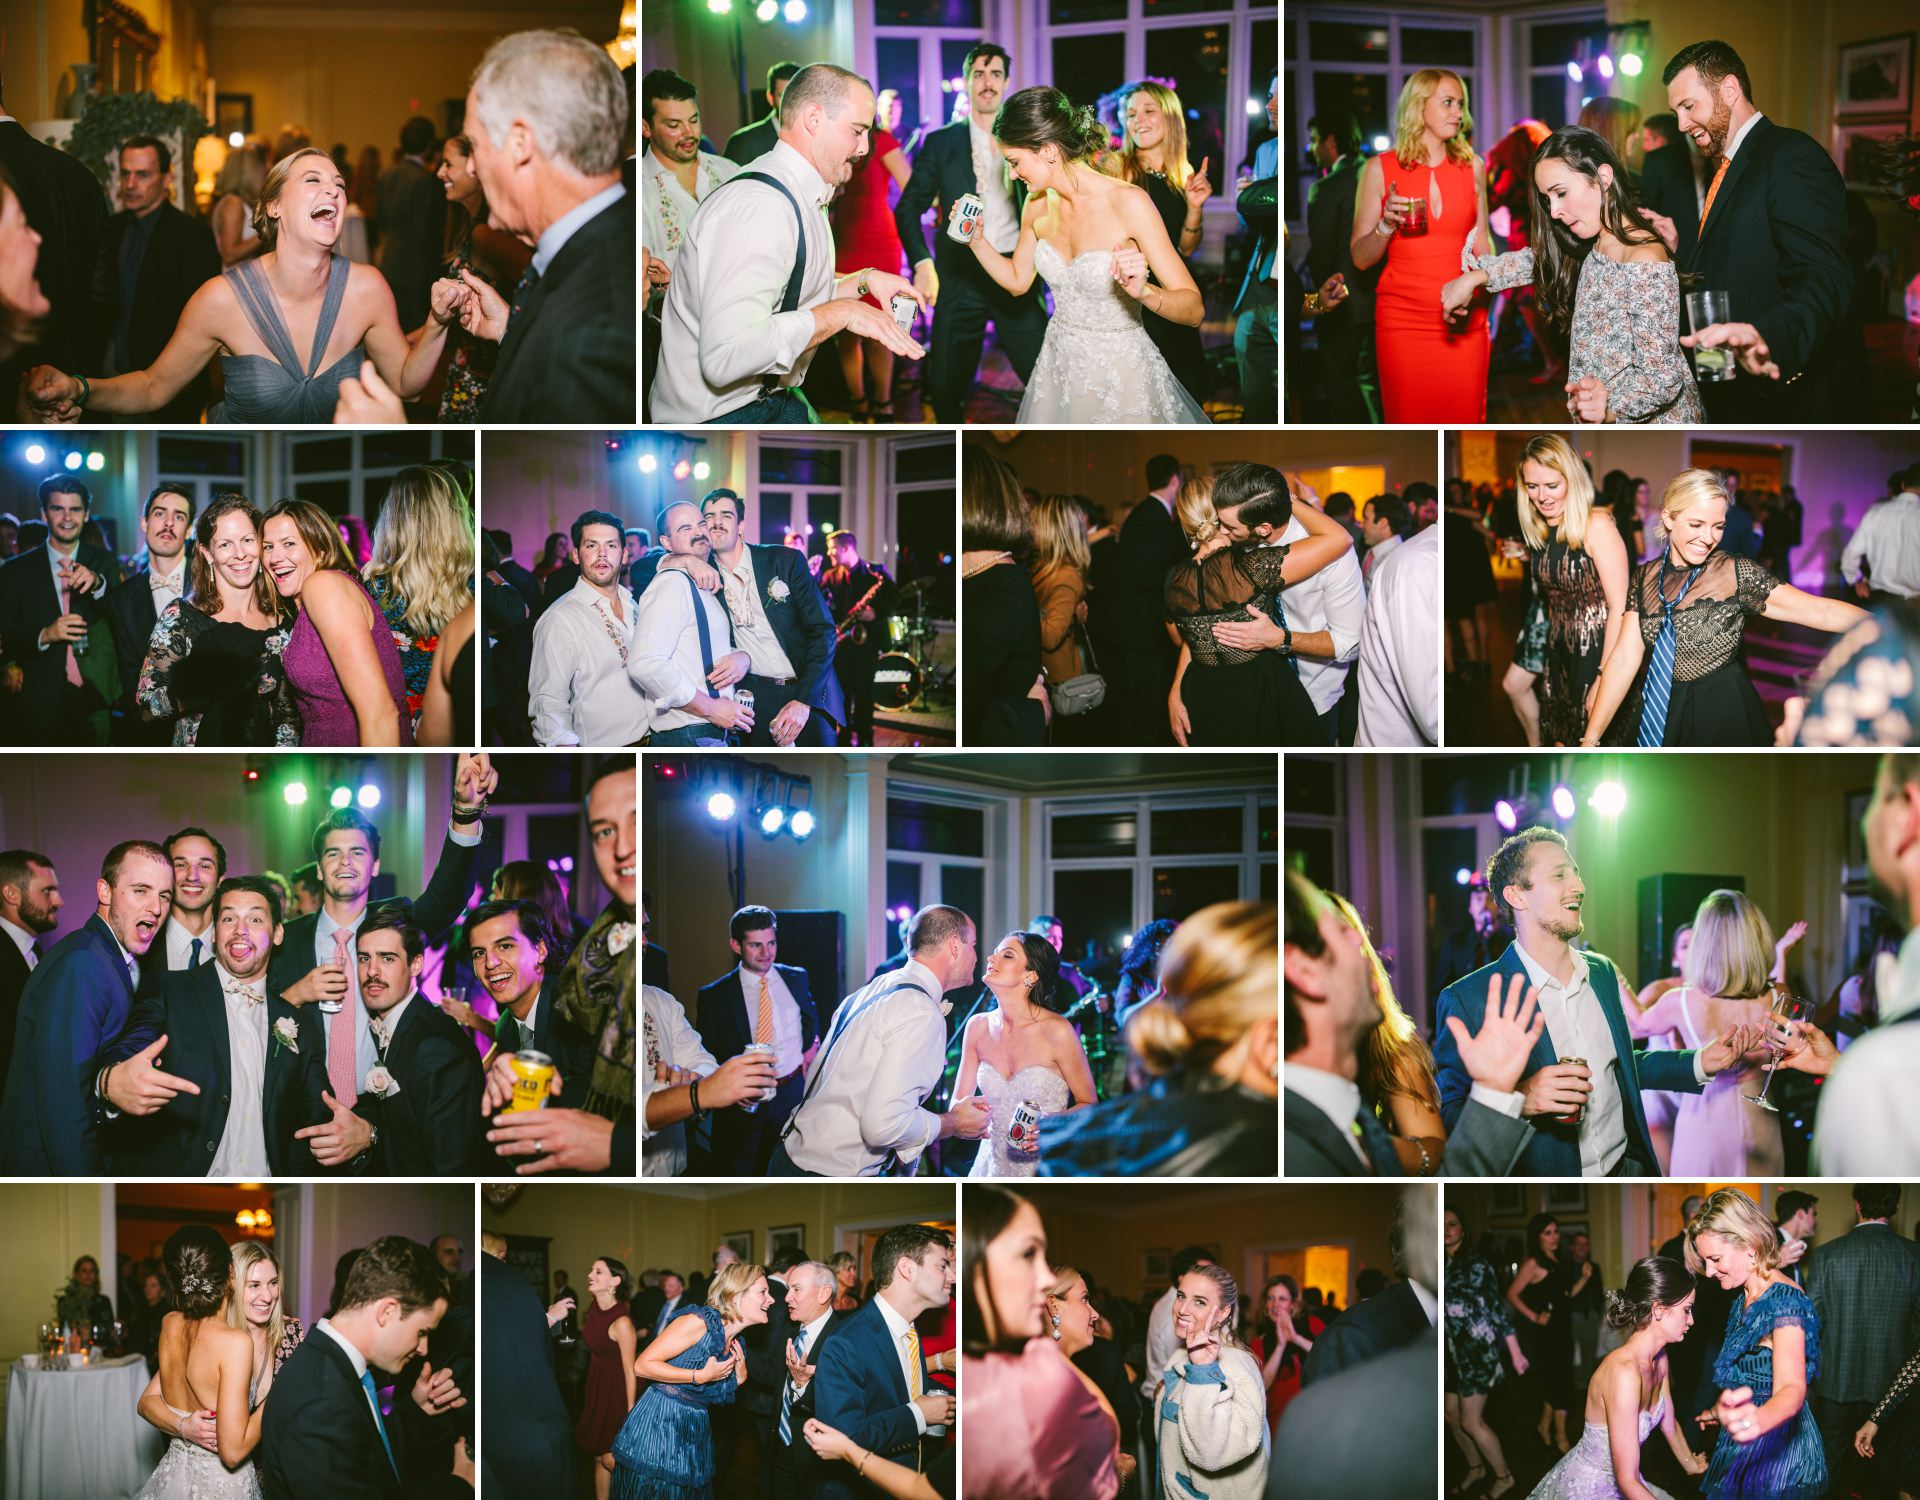 Wedding at Kirtland Country Club in Willoughby 3 46.jpg